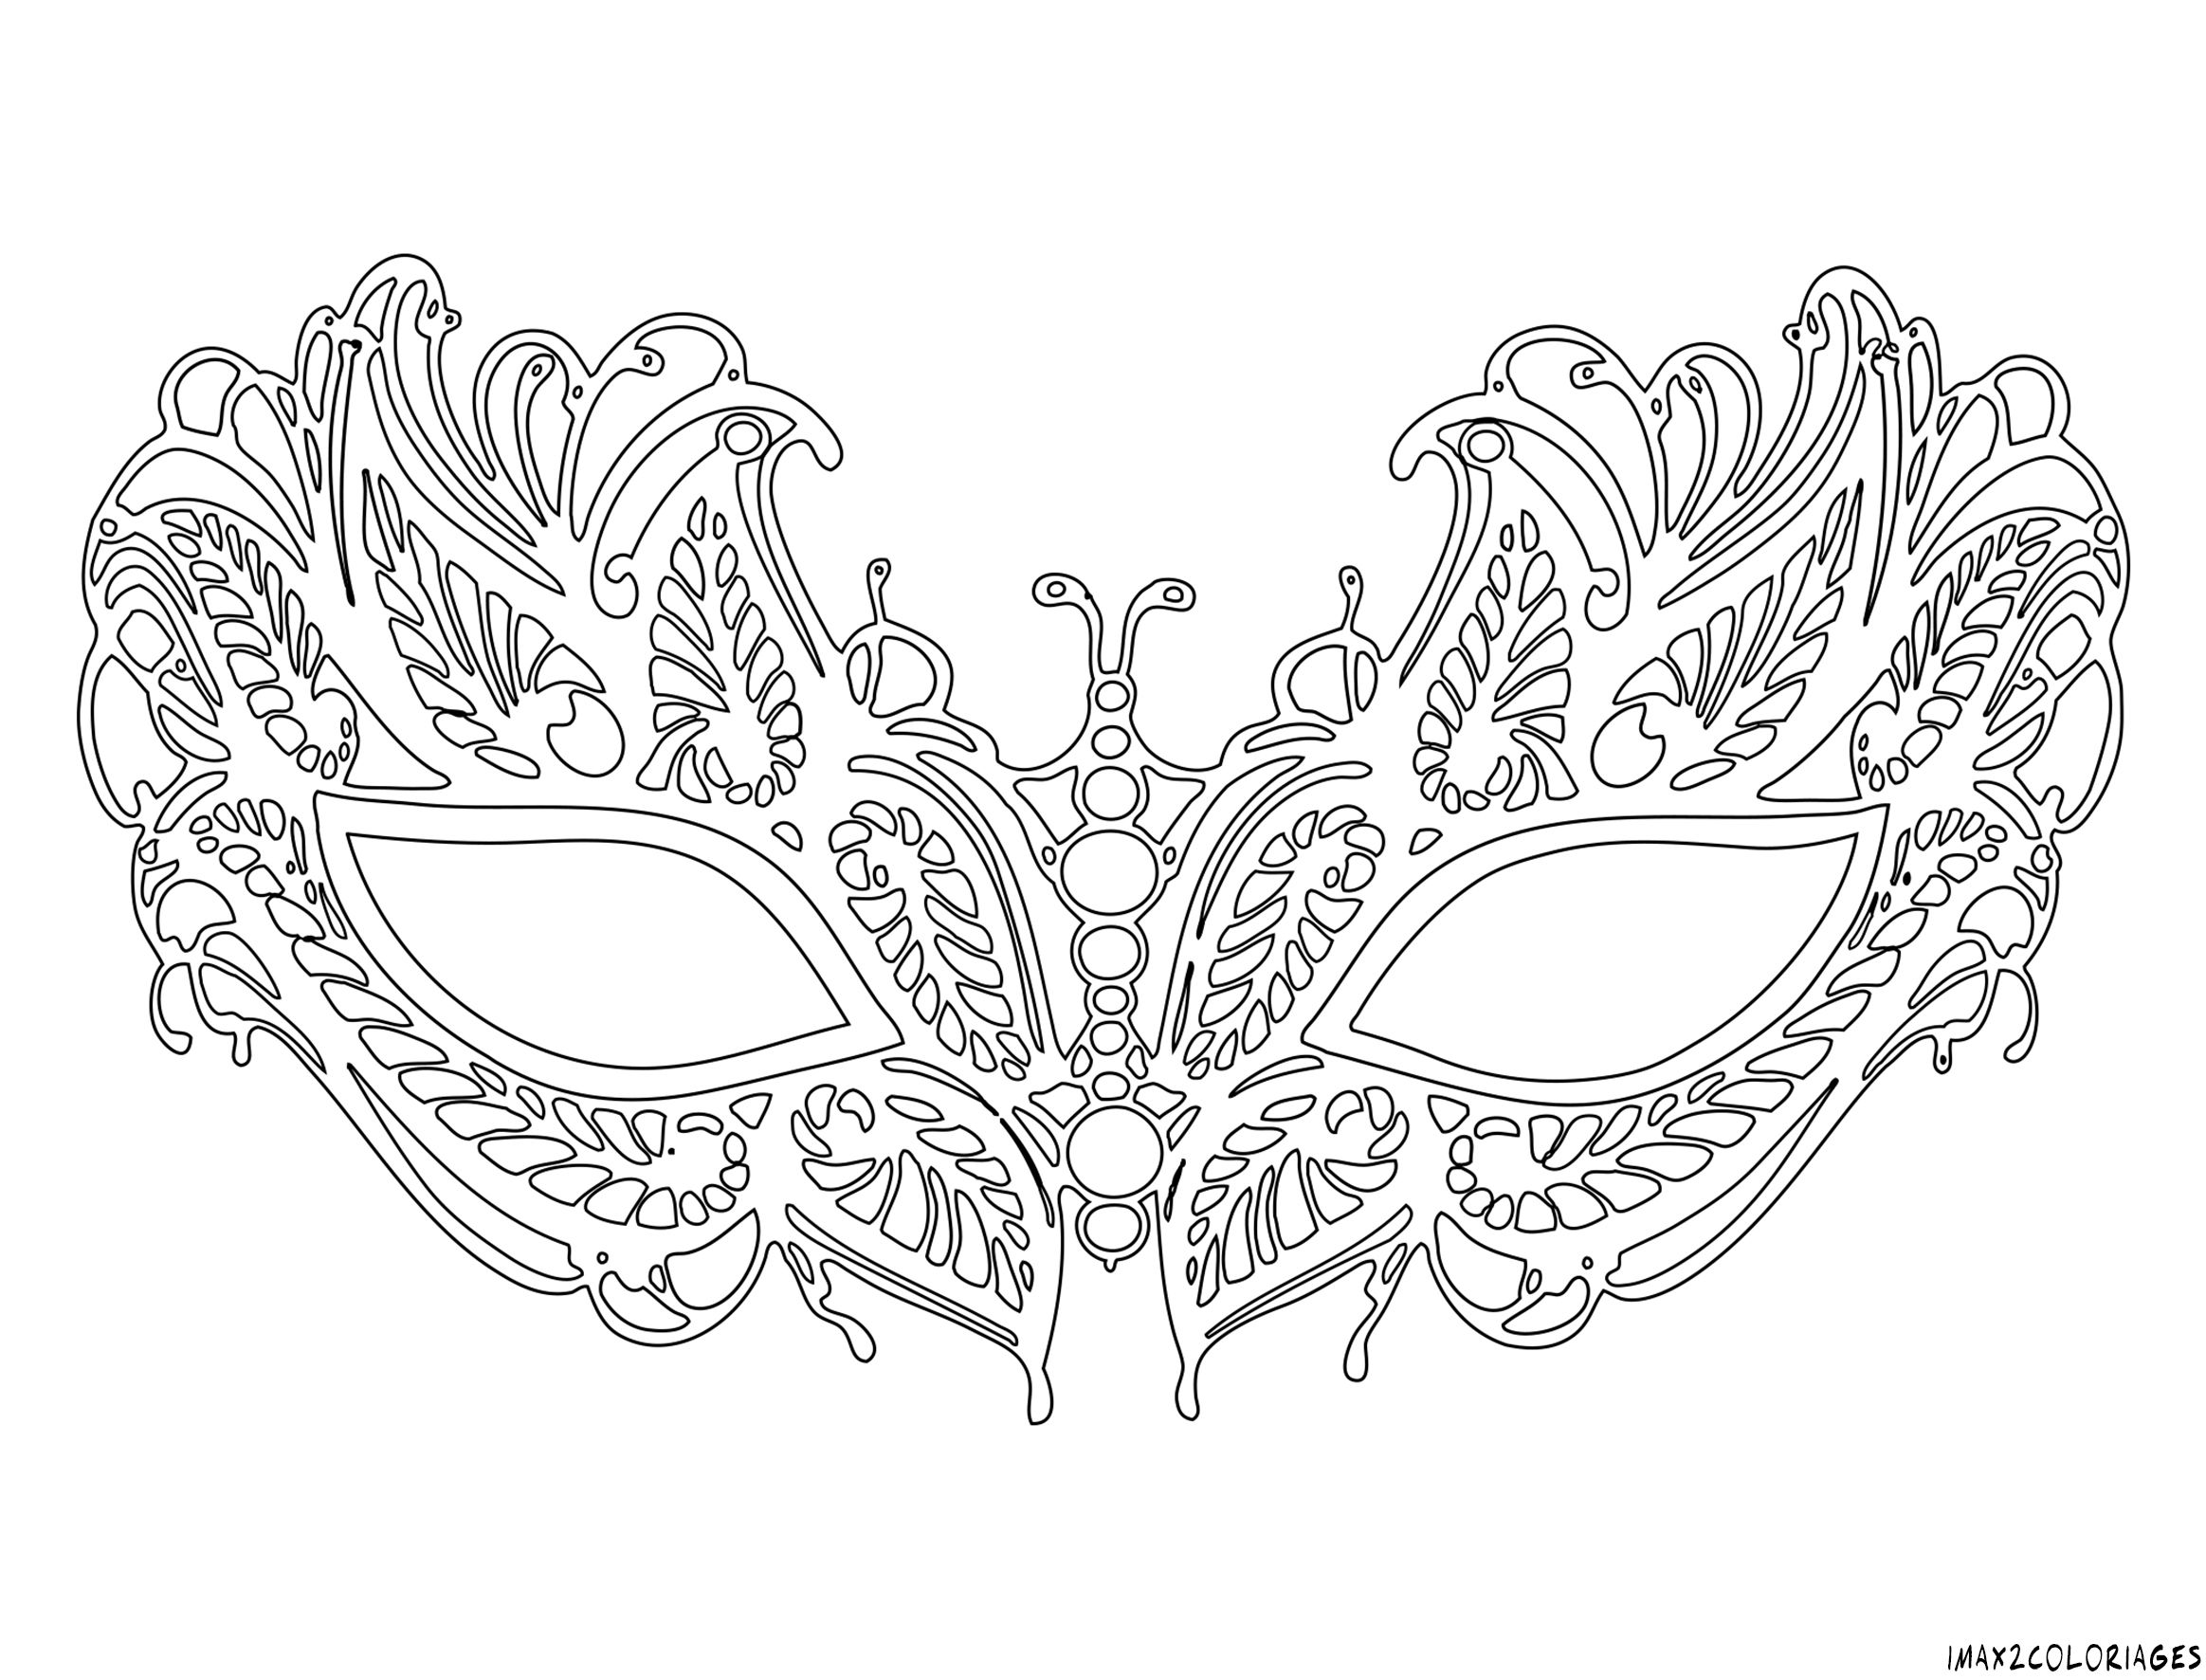 Coloring Pages For Adults Masks : Coloriage masque vénitien lafayette grande image mixed